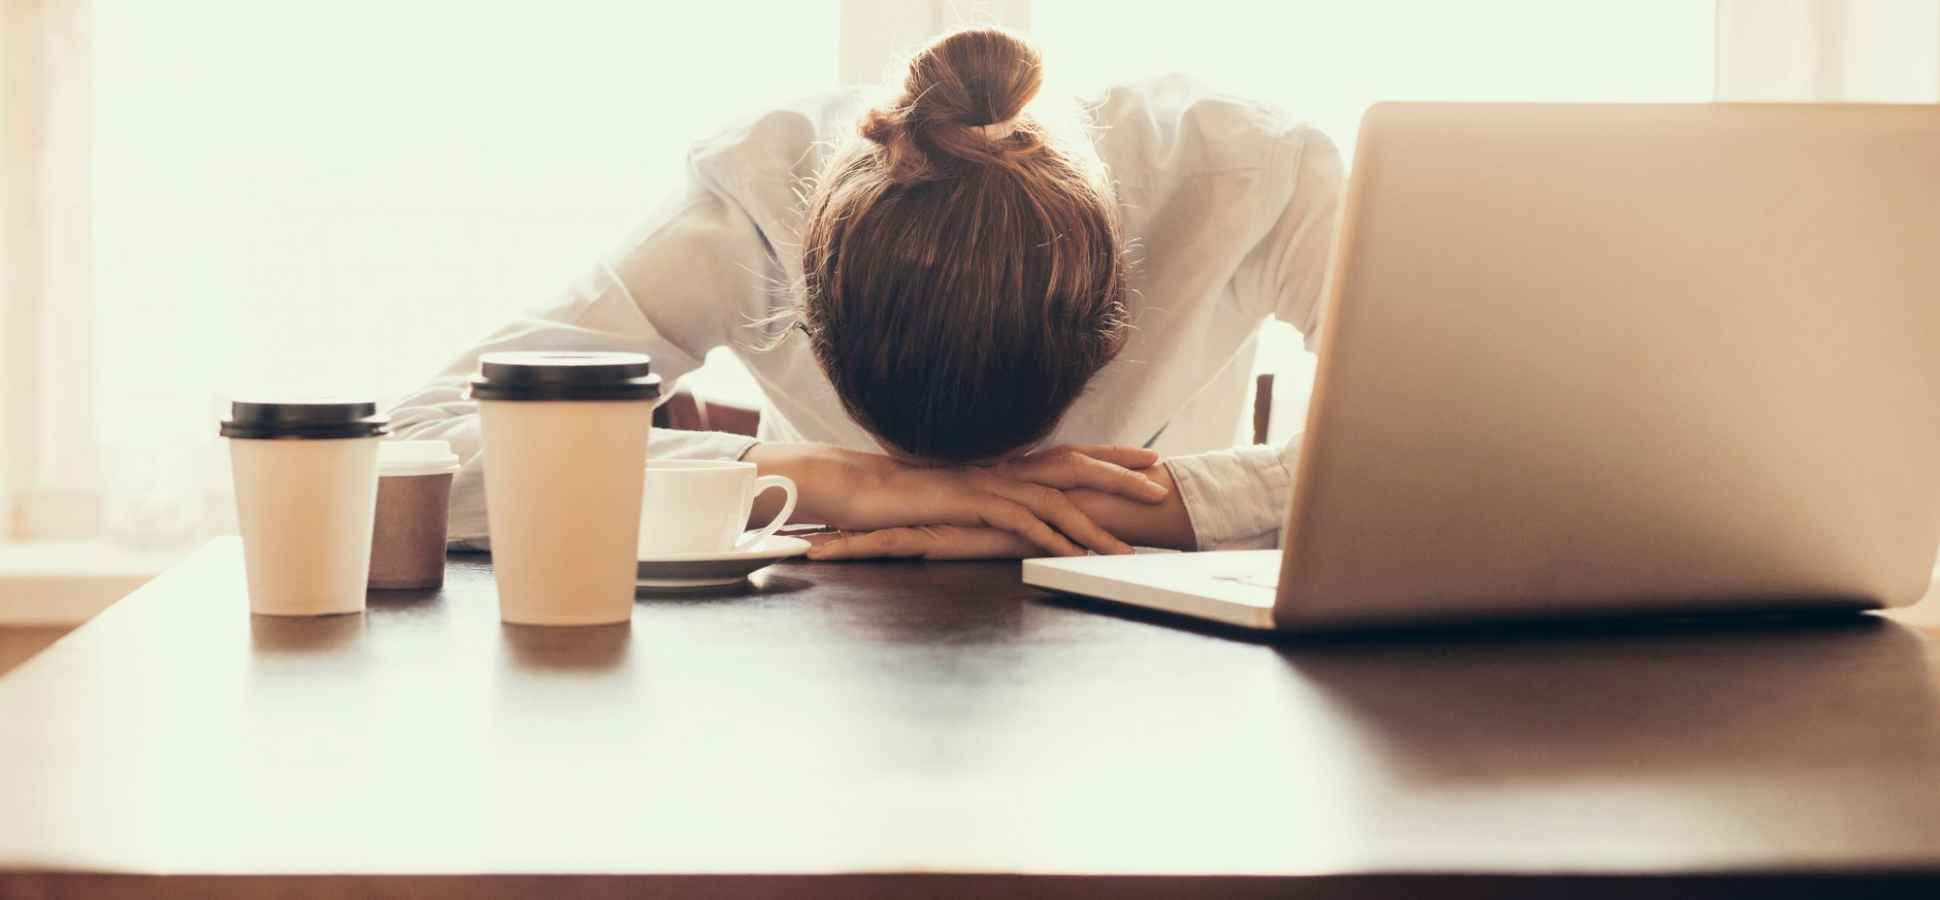 Watch 5 Weird Things Stress Is Doing To Your Body video